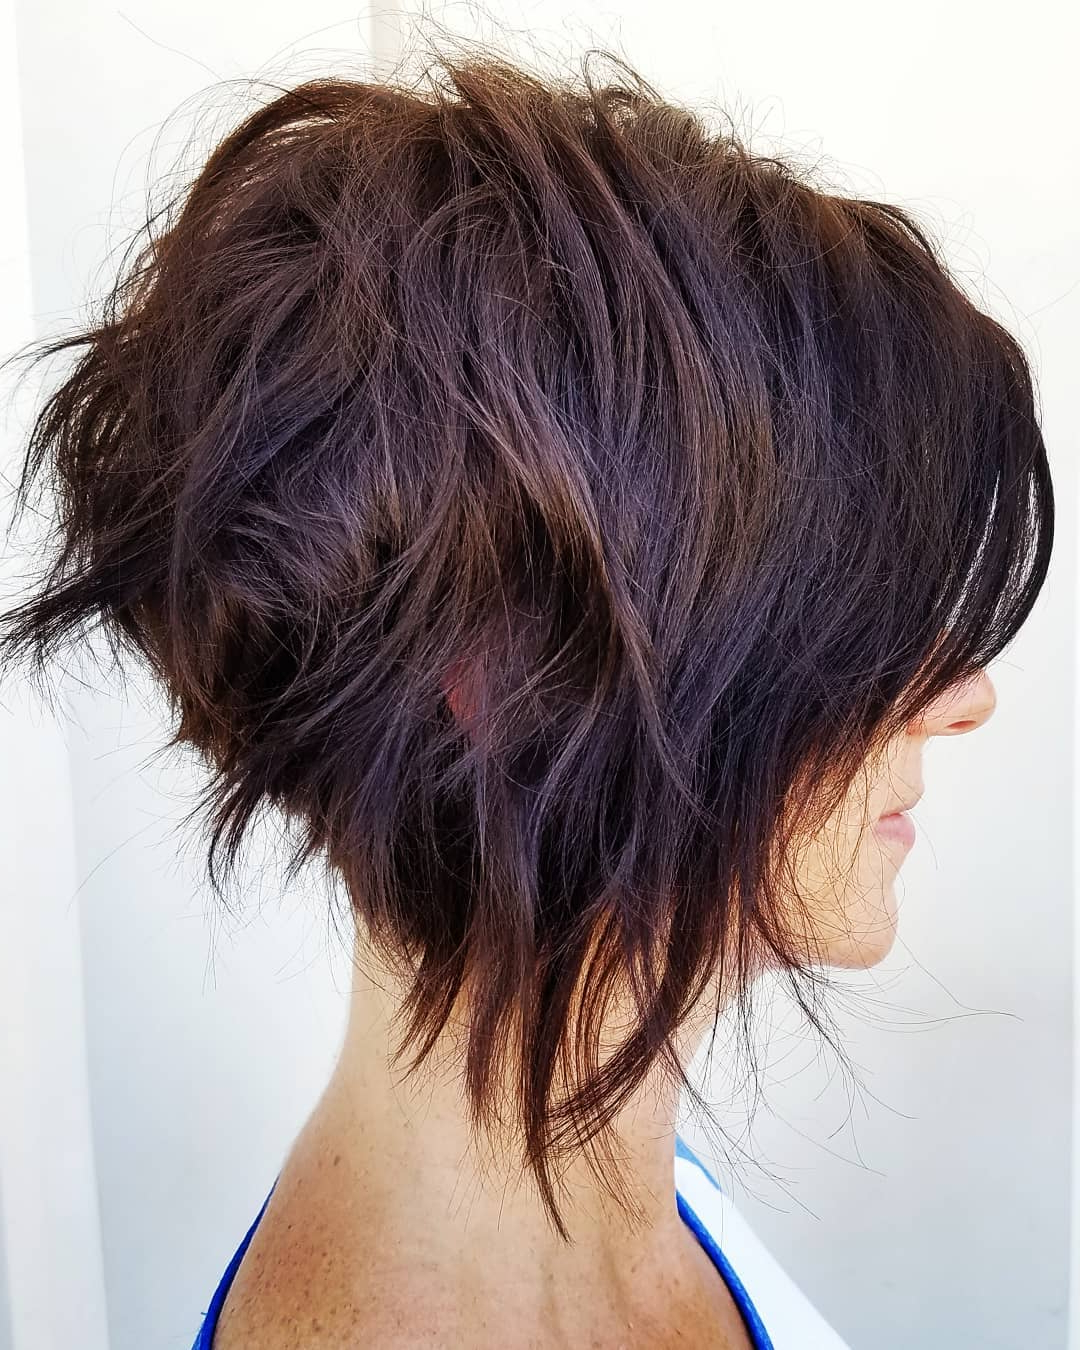 10 Trendy Messy Bob Hairstyles And Haircuts, 2019 Female Short Hair For Well Known Casual A Line Bob Hairstyles (View 12 of 20)